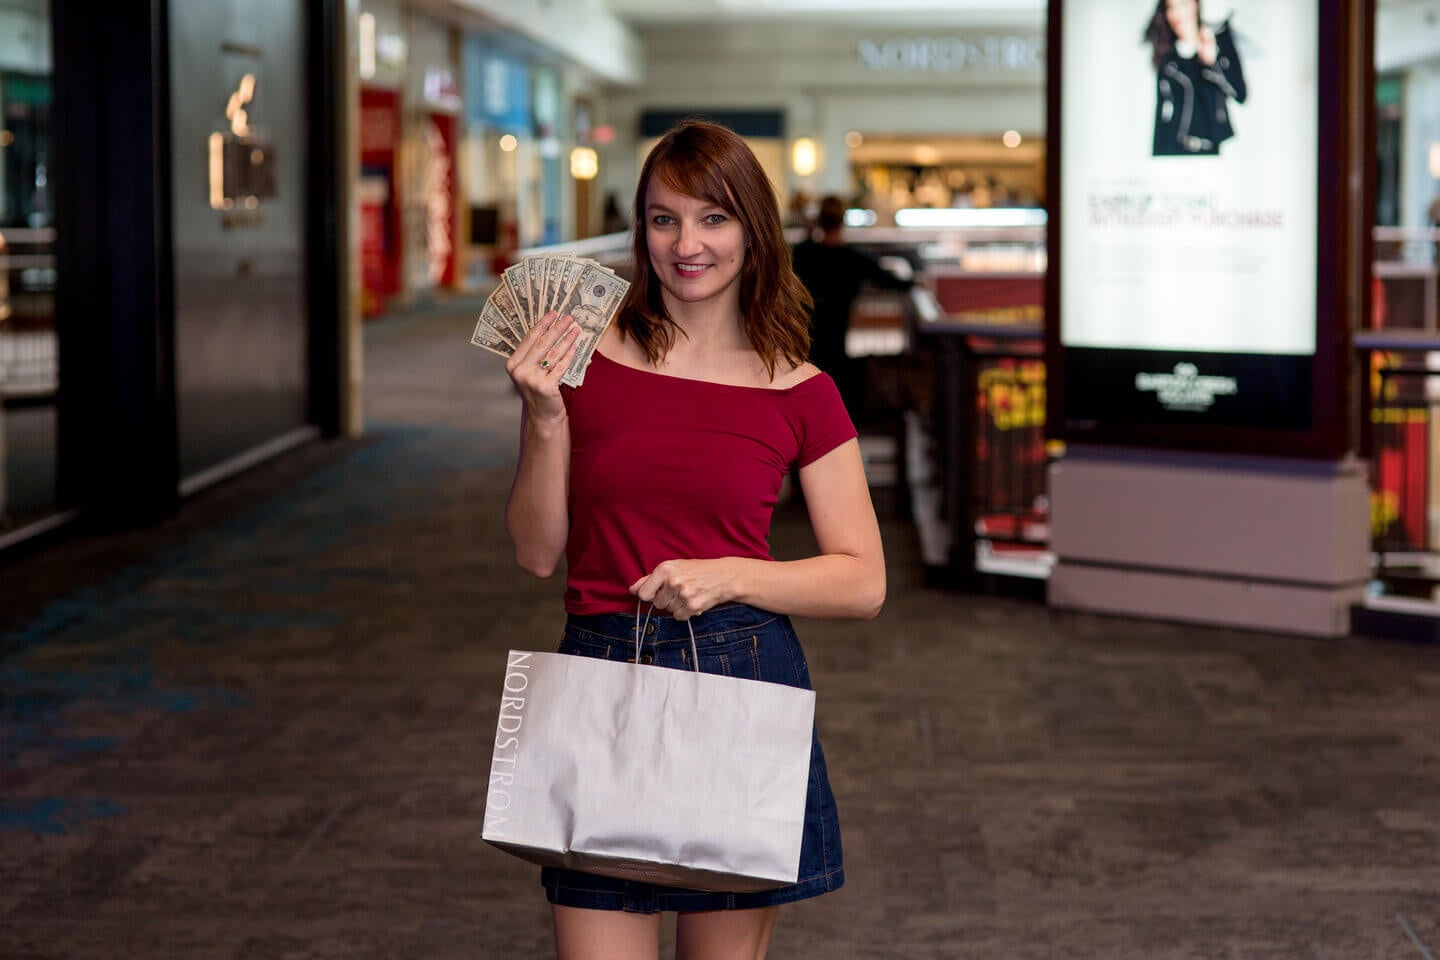 How to Earn TONS of Bonus Points by Using the Chase Ultimate Rewards Shopping Portal